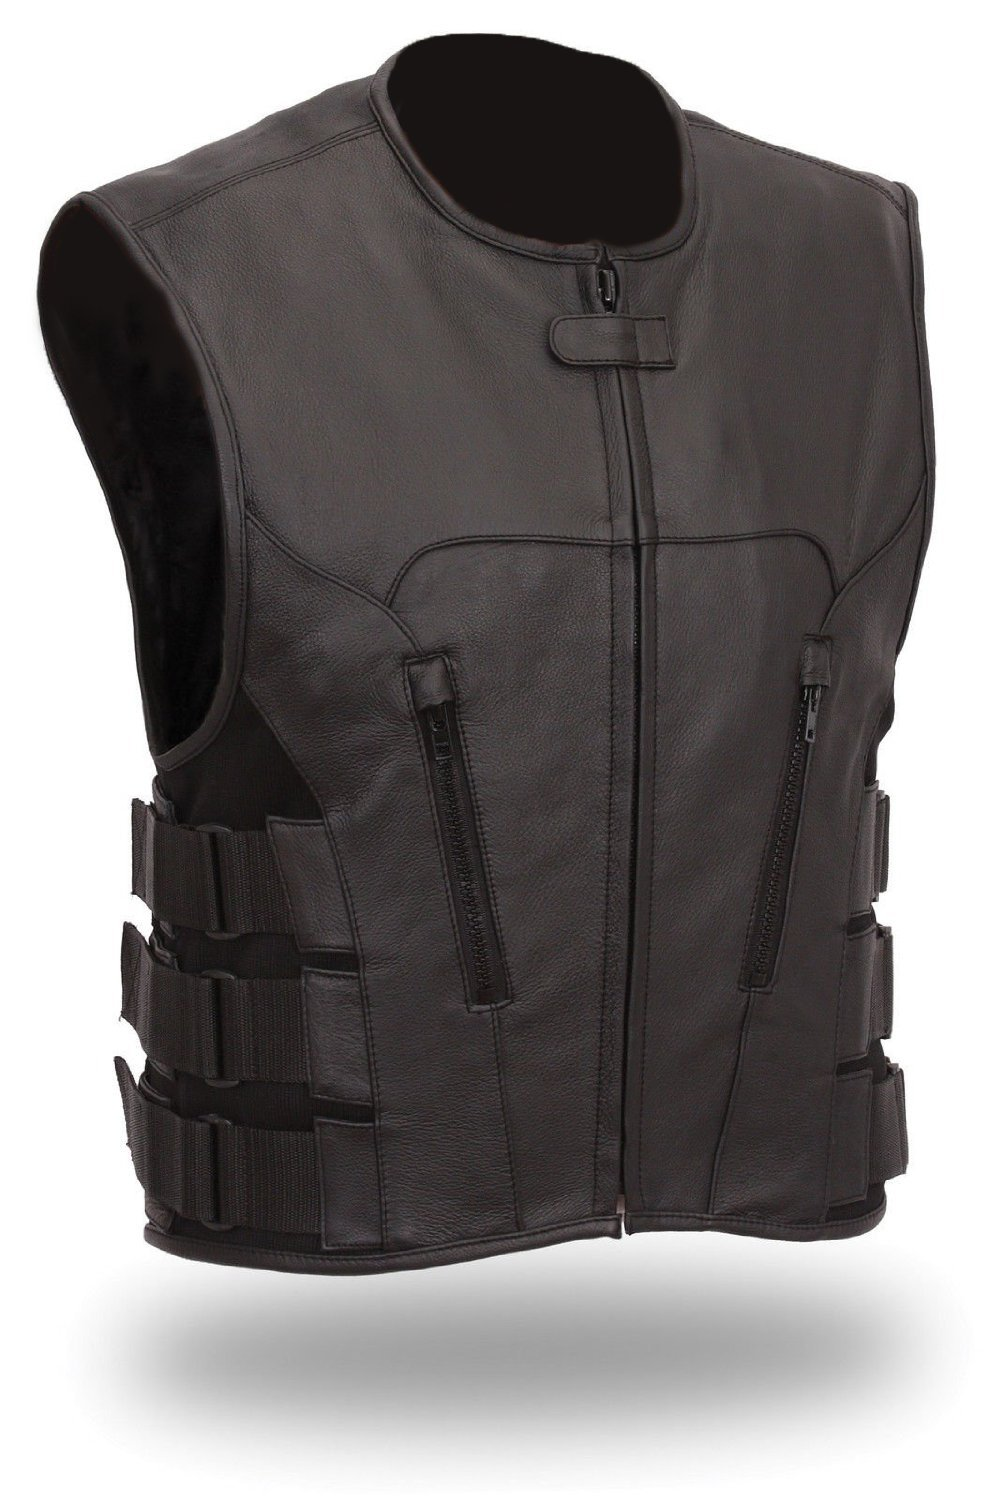 The Nekid Cow Men's Updated SWAT Team Leather Motorcycle Vest Soft Buffalo Leather(Black, Medium) -GUARANTEED - Tactical Outlaw Black Biker Vests for Men - Law Enforcement Style Protective Side Adjustment Soft Leather Bonus 151 page Motorcycle & Restorati by The Nekid Cow